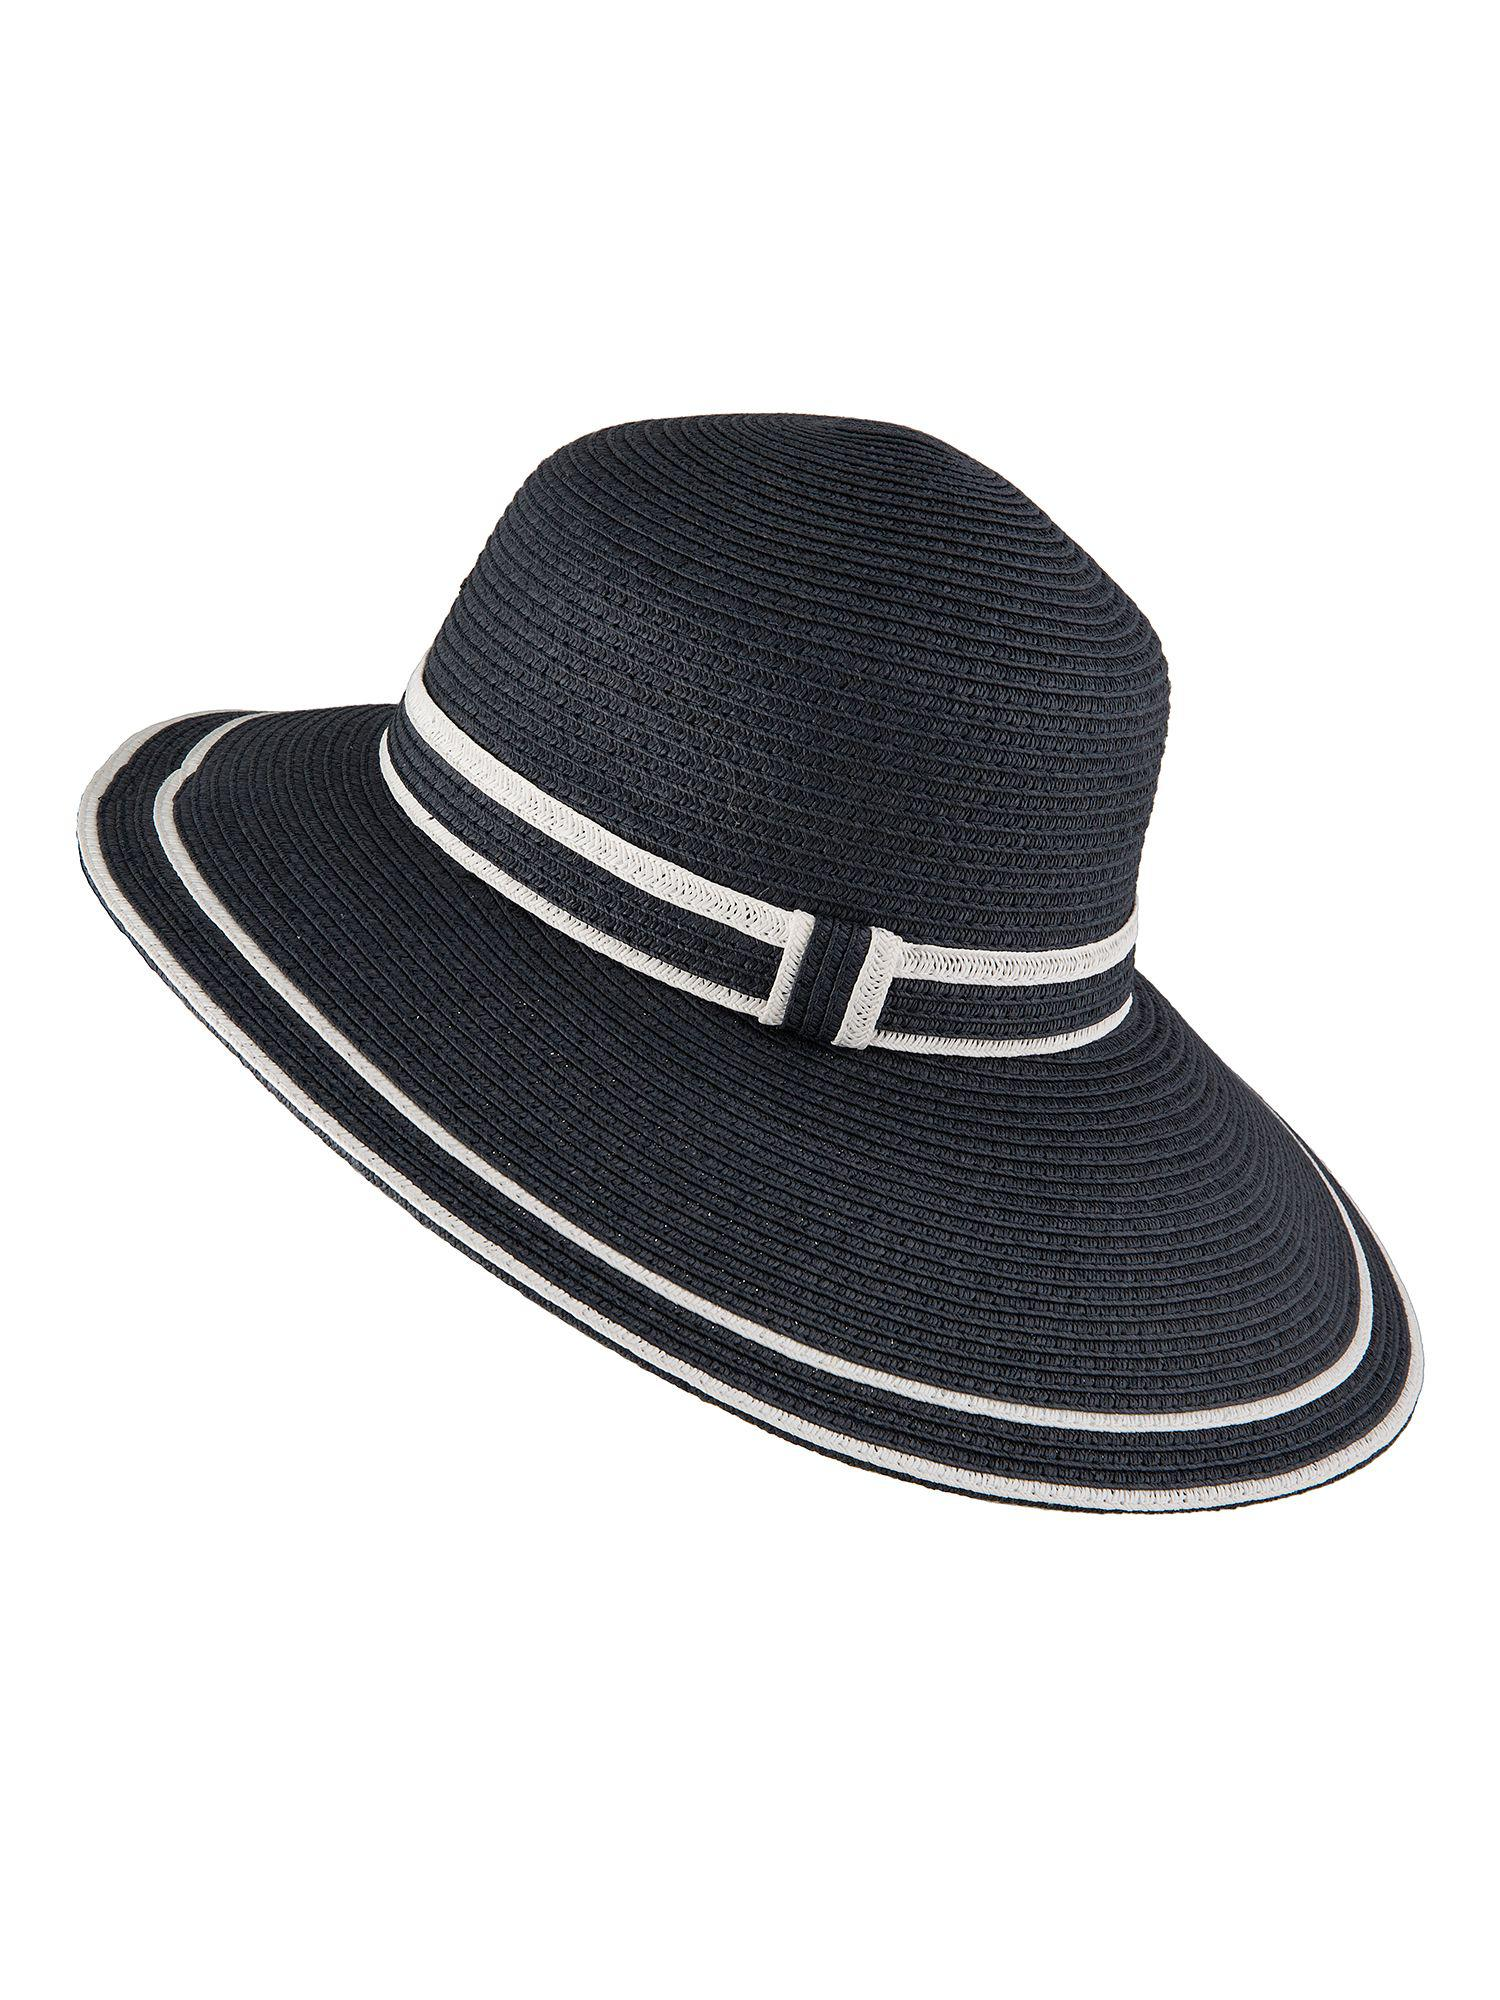 4dc48d53482 Dents Paper Straw Hat in Blue - Lyst